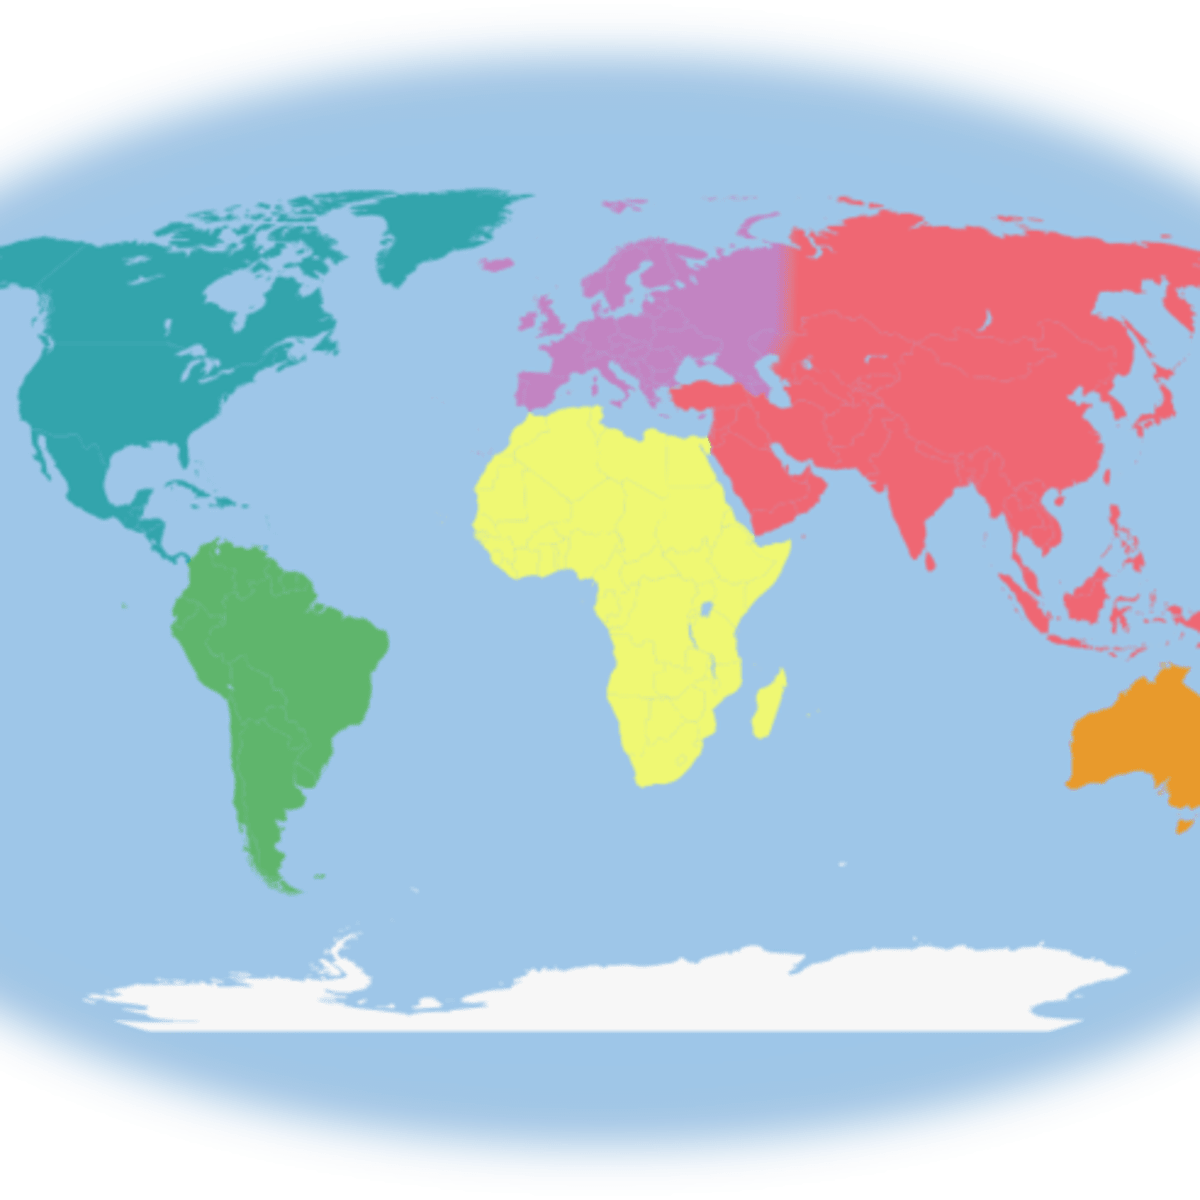 hight resolution of Introduction to Continents and Countries for Preschool and Kindergarten -  WeHaveKids - Family